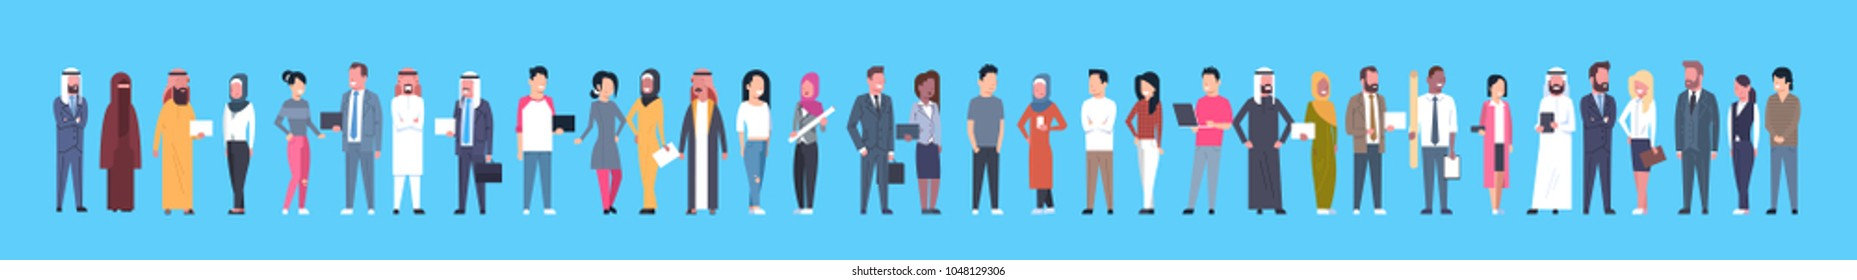 Diverse Business People Businessmen And Businesswomen, Mix Race Businesspeople Horizontal Banner